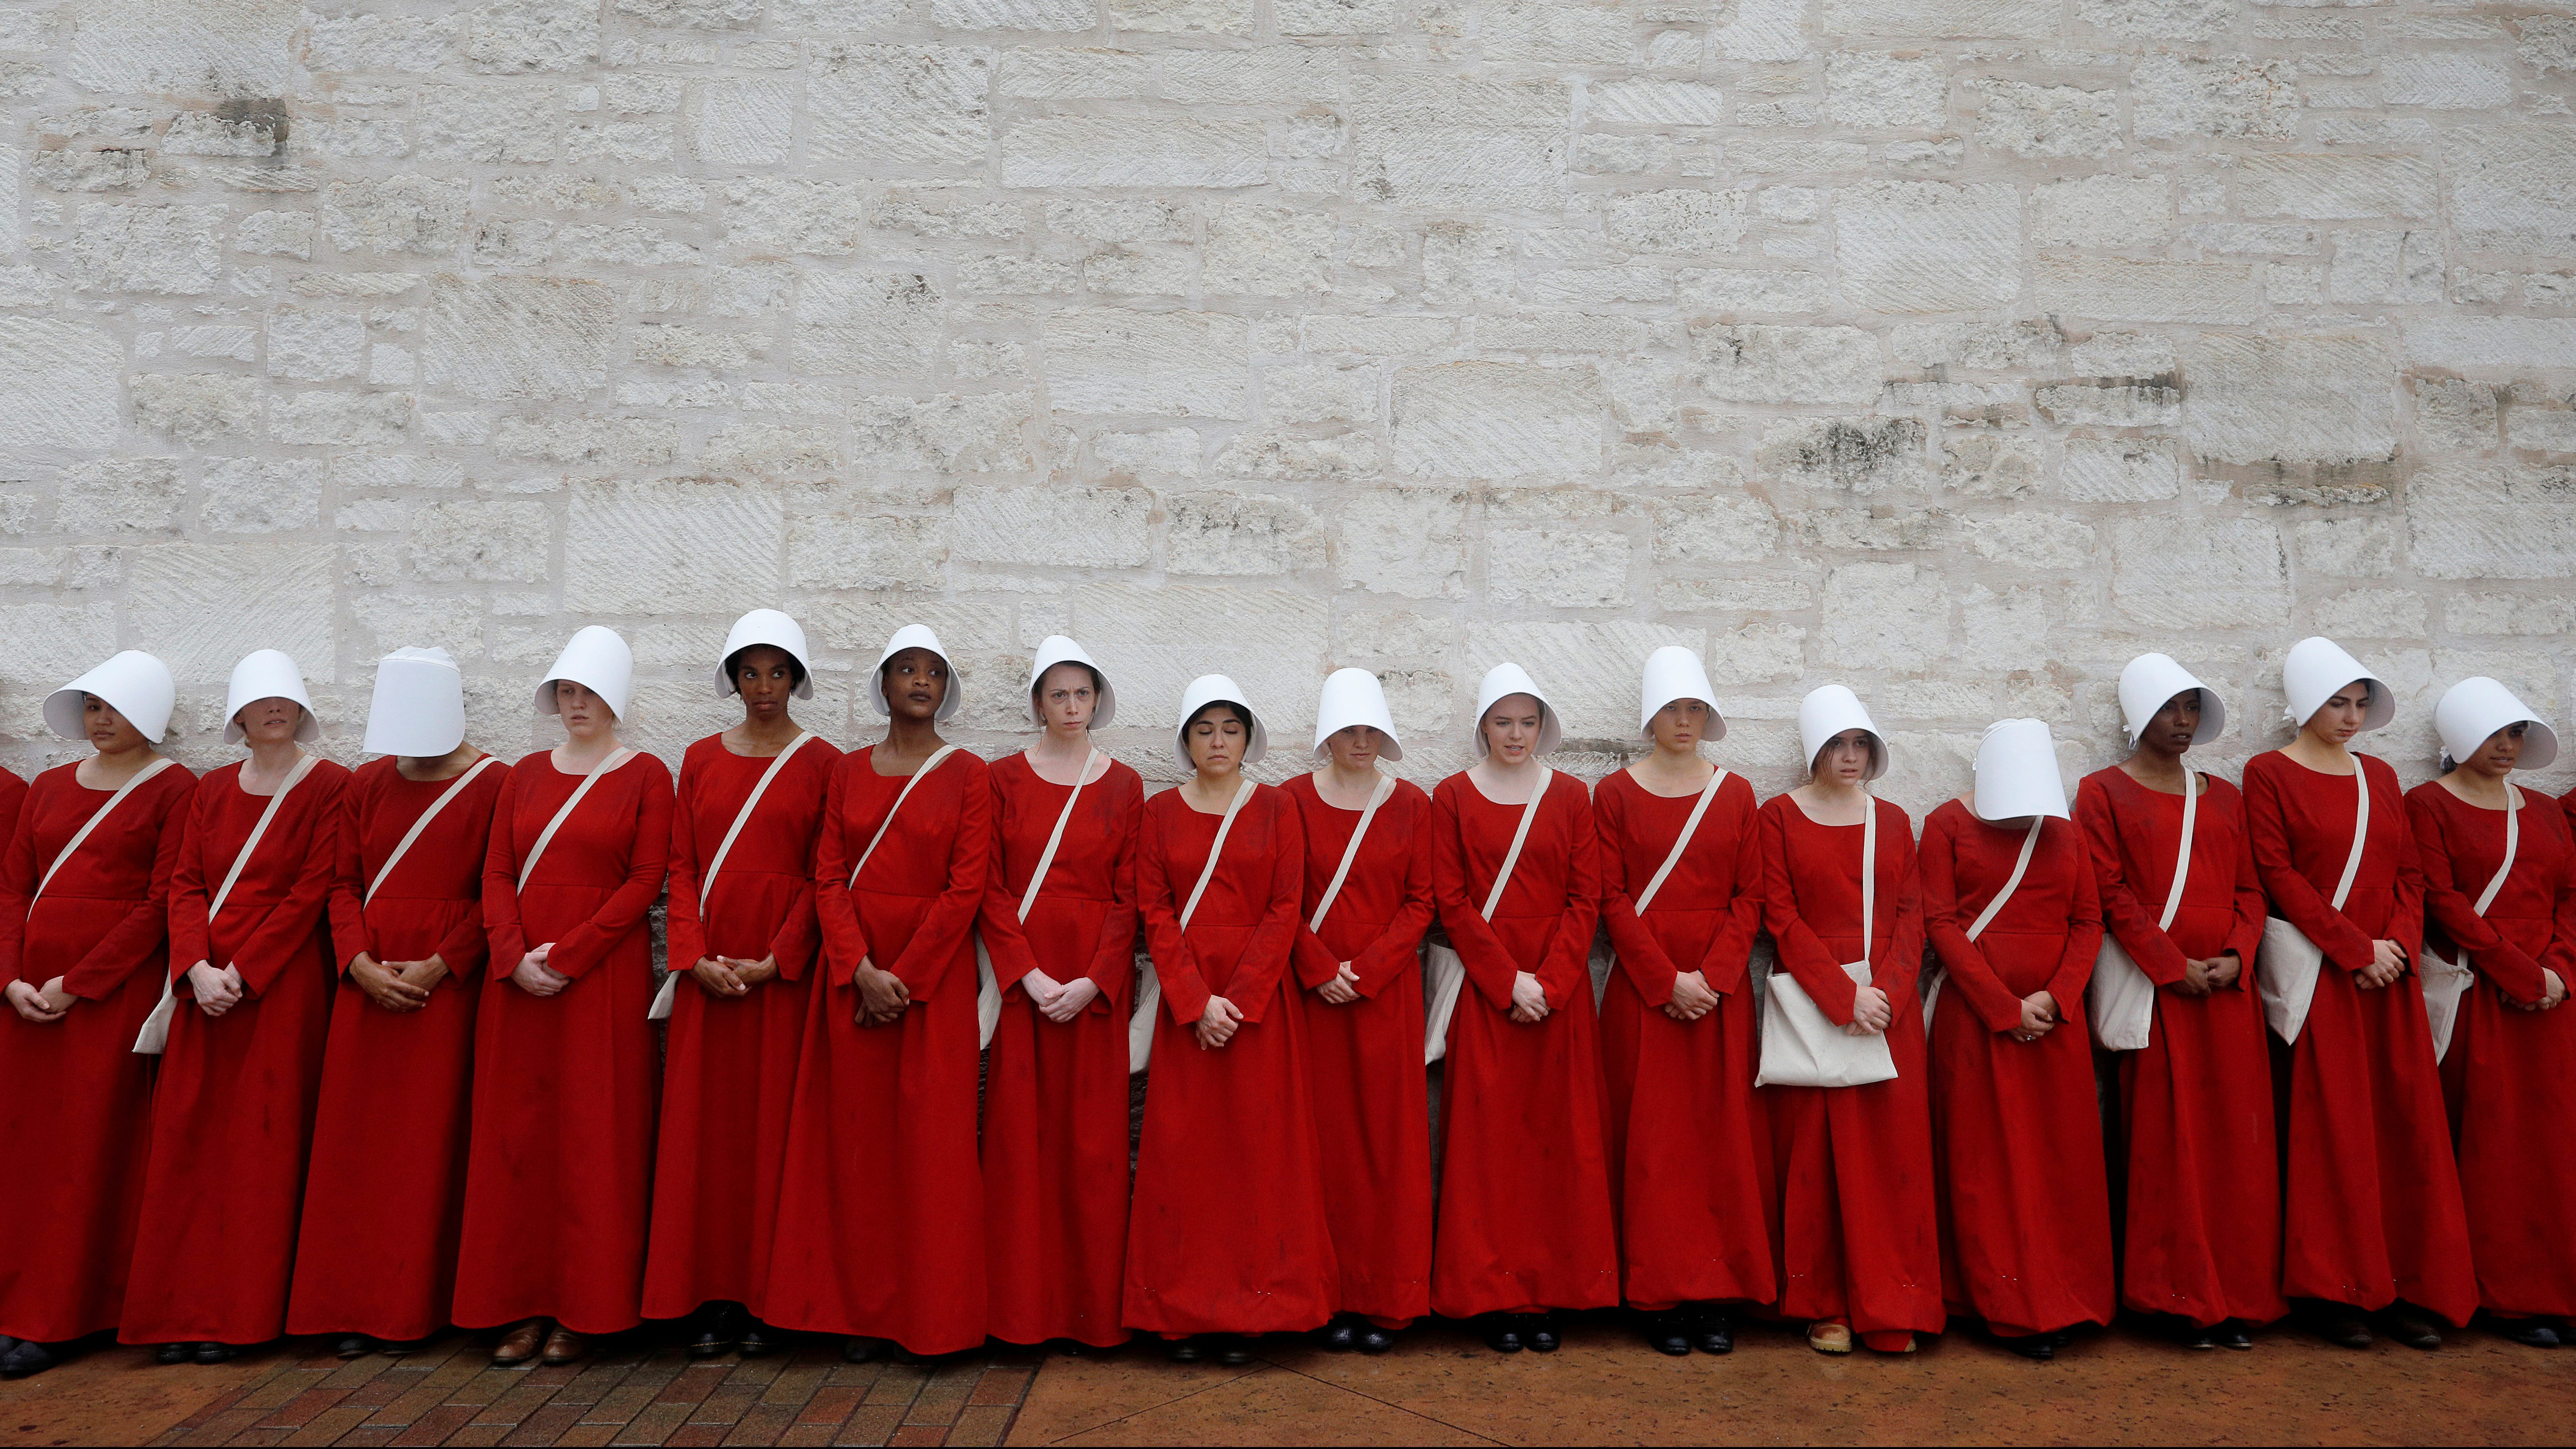 """Women dressed as handmaids promoting the Hulu original series """"The Handmaid's Tale"""" stand along a public street during the South by Southwest (SXSW) Music Film Interactive Festival 2017 in Austin, Texas, U.S., March 11, 2017. REUTERS/Brian Snyder     TPX IMAGES OF THE DAY - RTX30MMQ"""